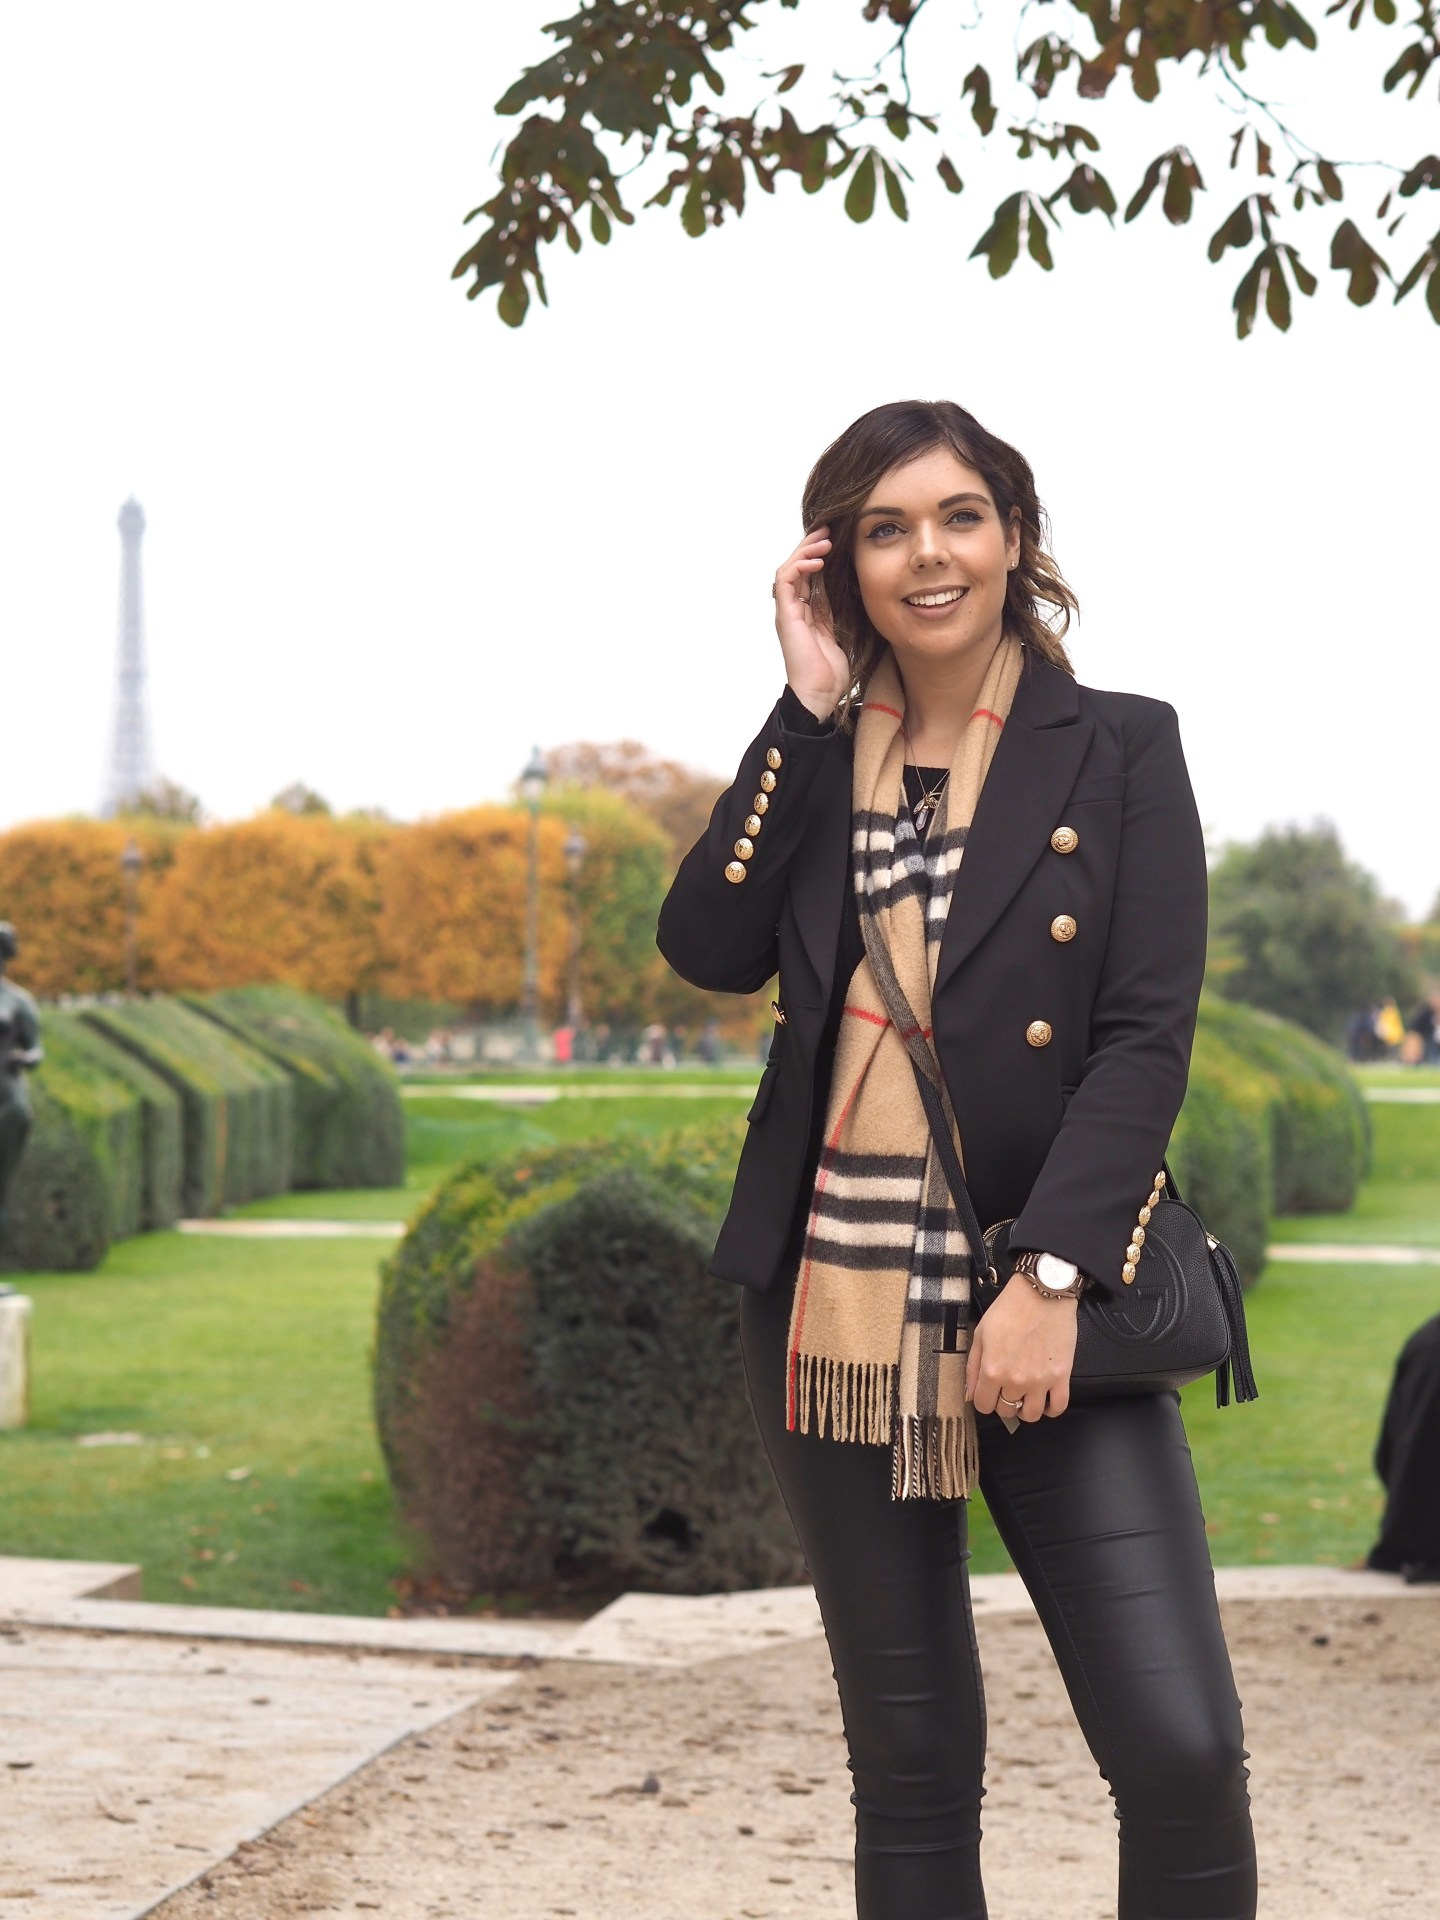 OUR PARISIAN ADVENTURE IN THE FALL